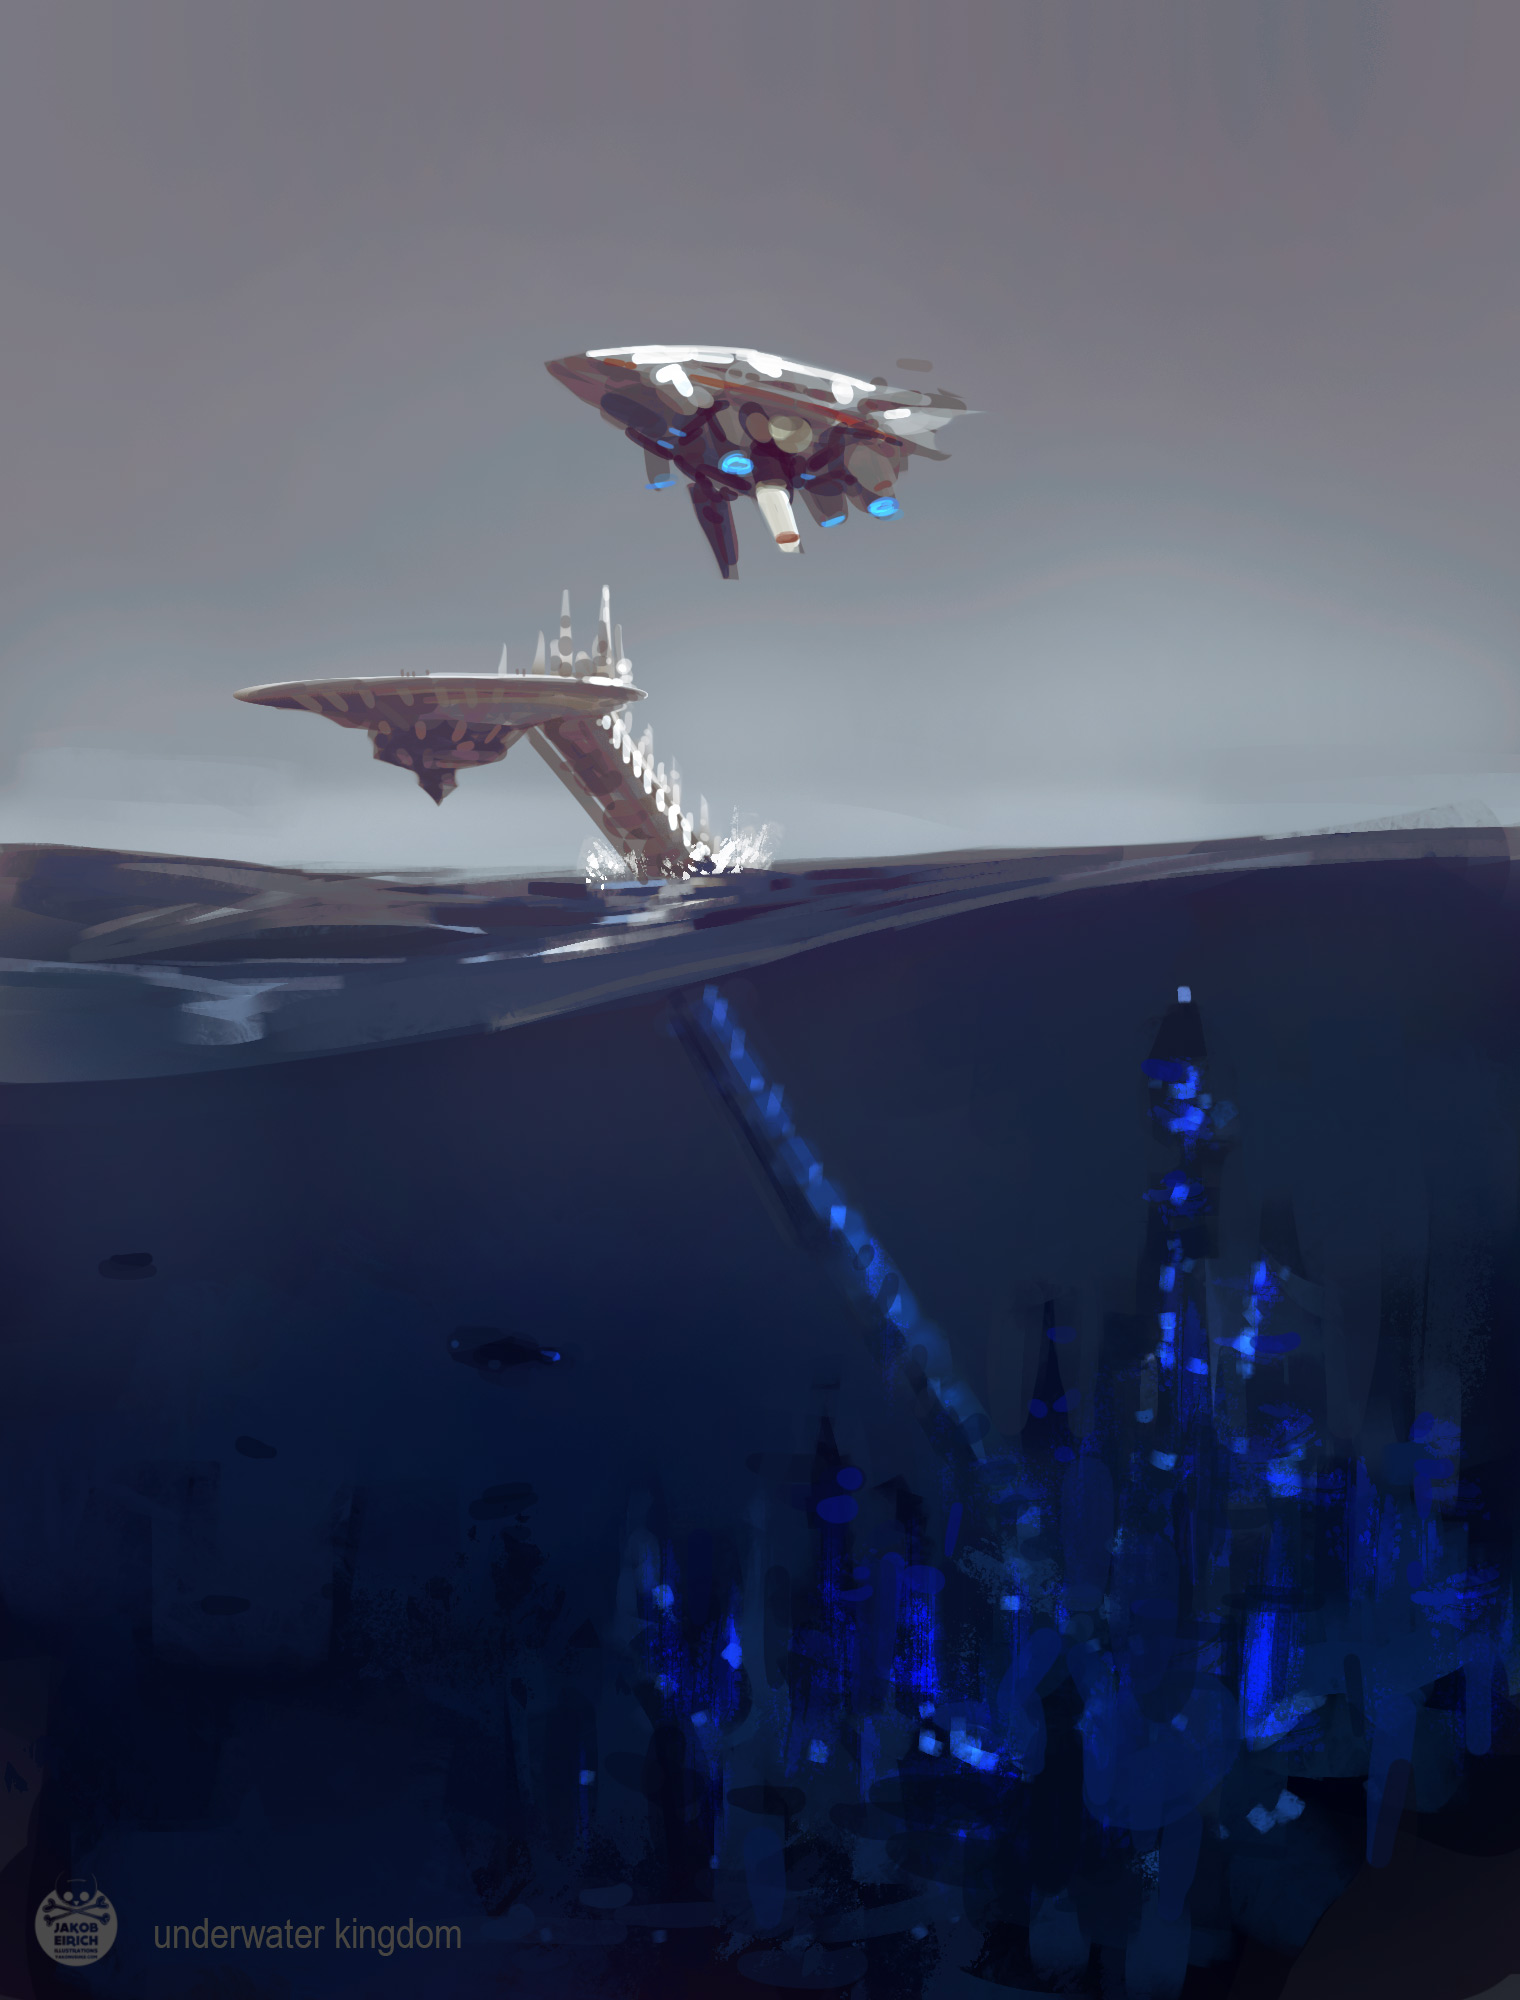 underwaterkingdom